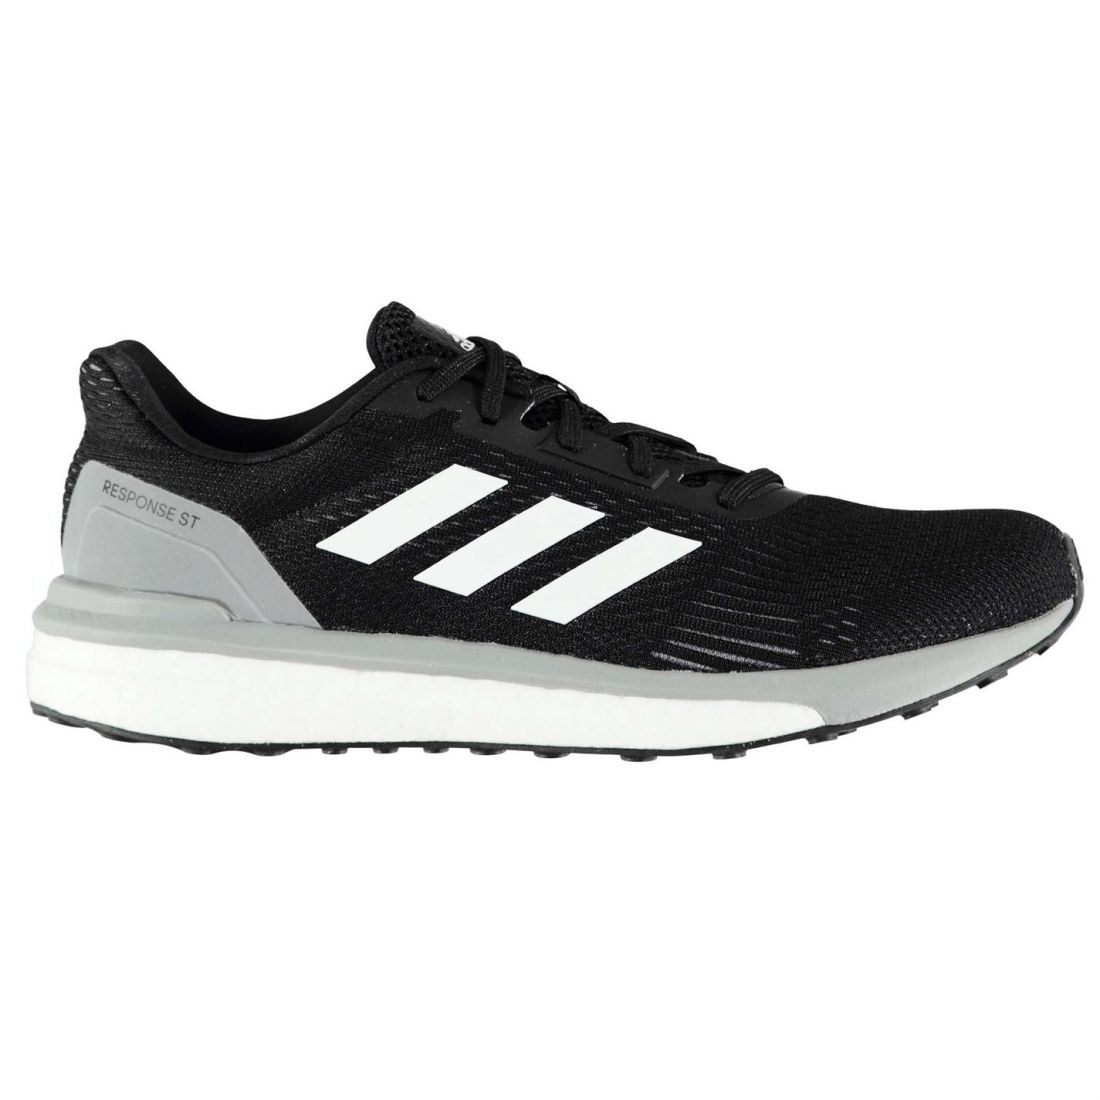 8a2c60bd4 Image is loading adidas-Response-ST-Running-Shoes-Mens-Gents-Road-